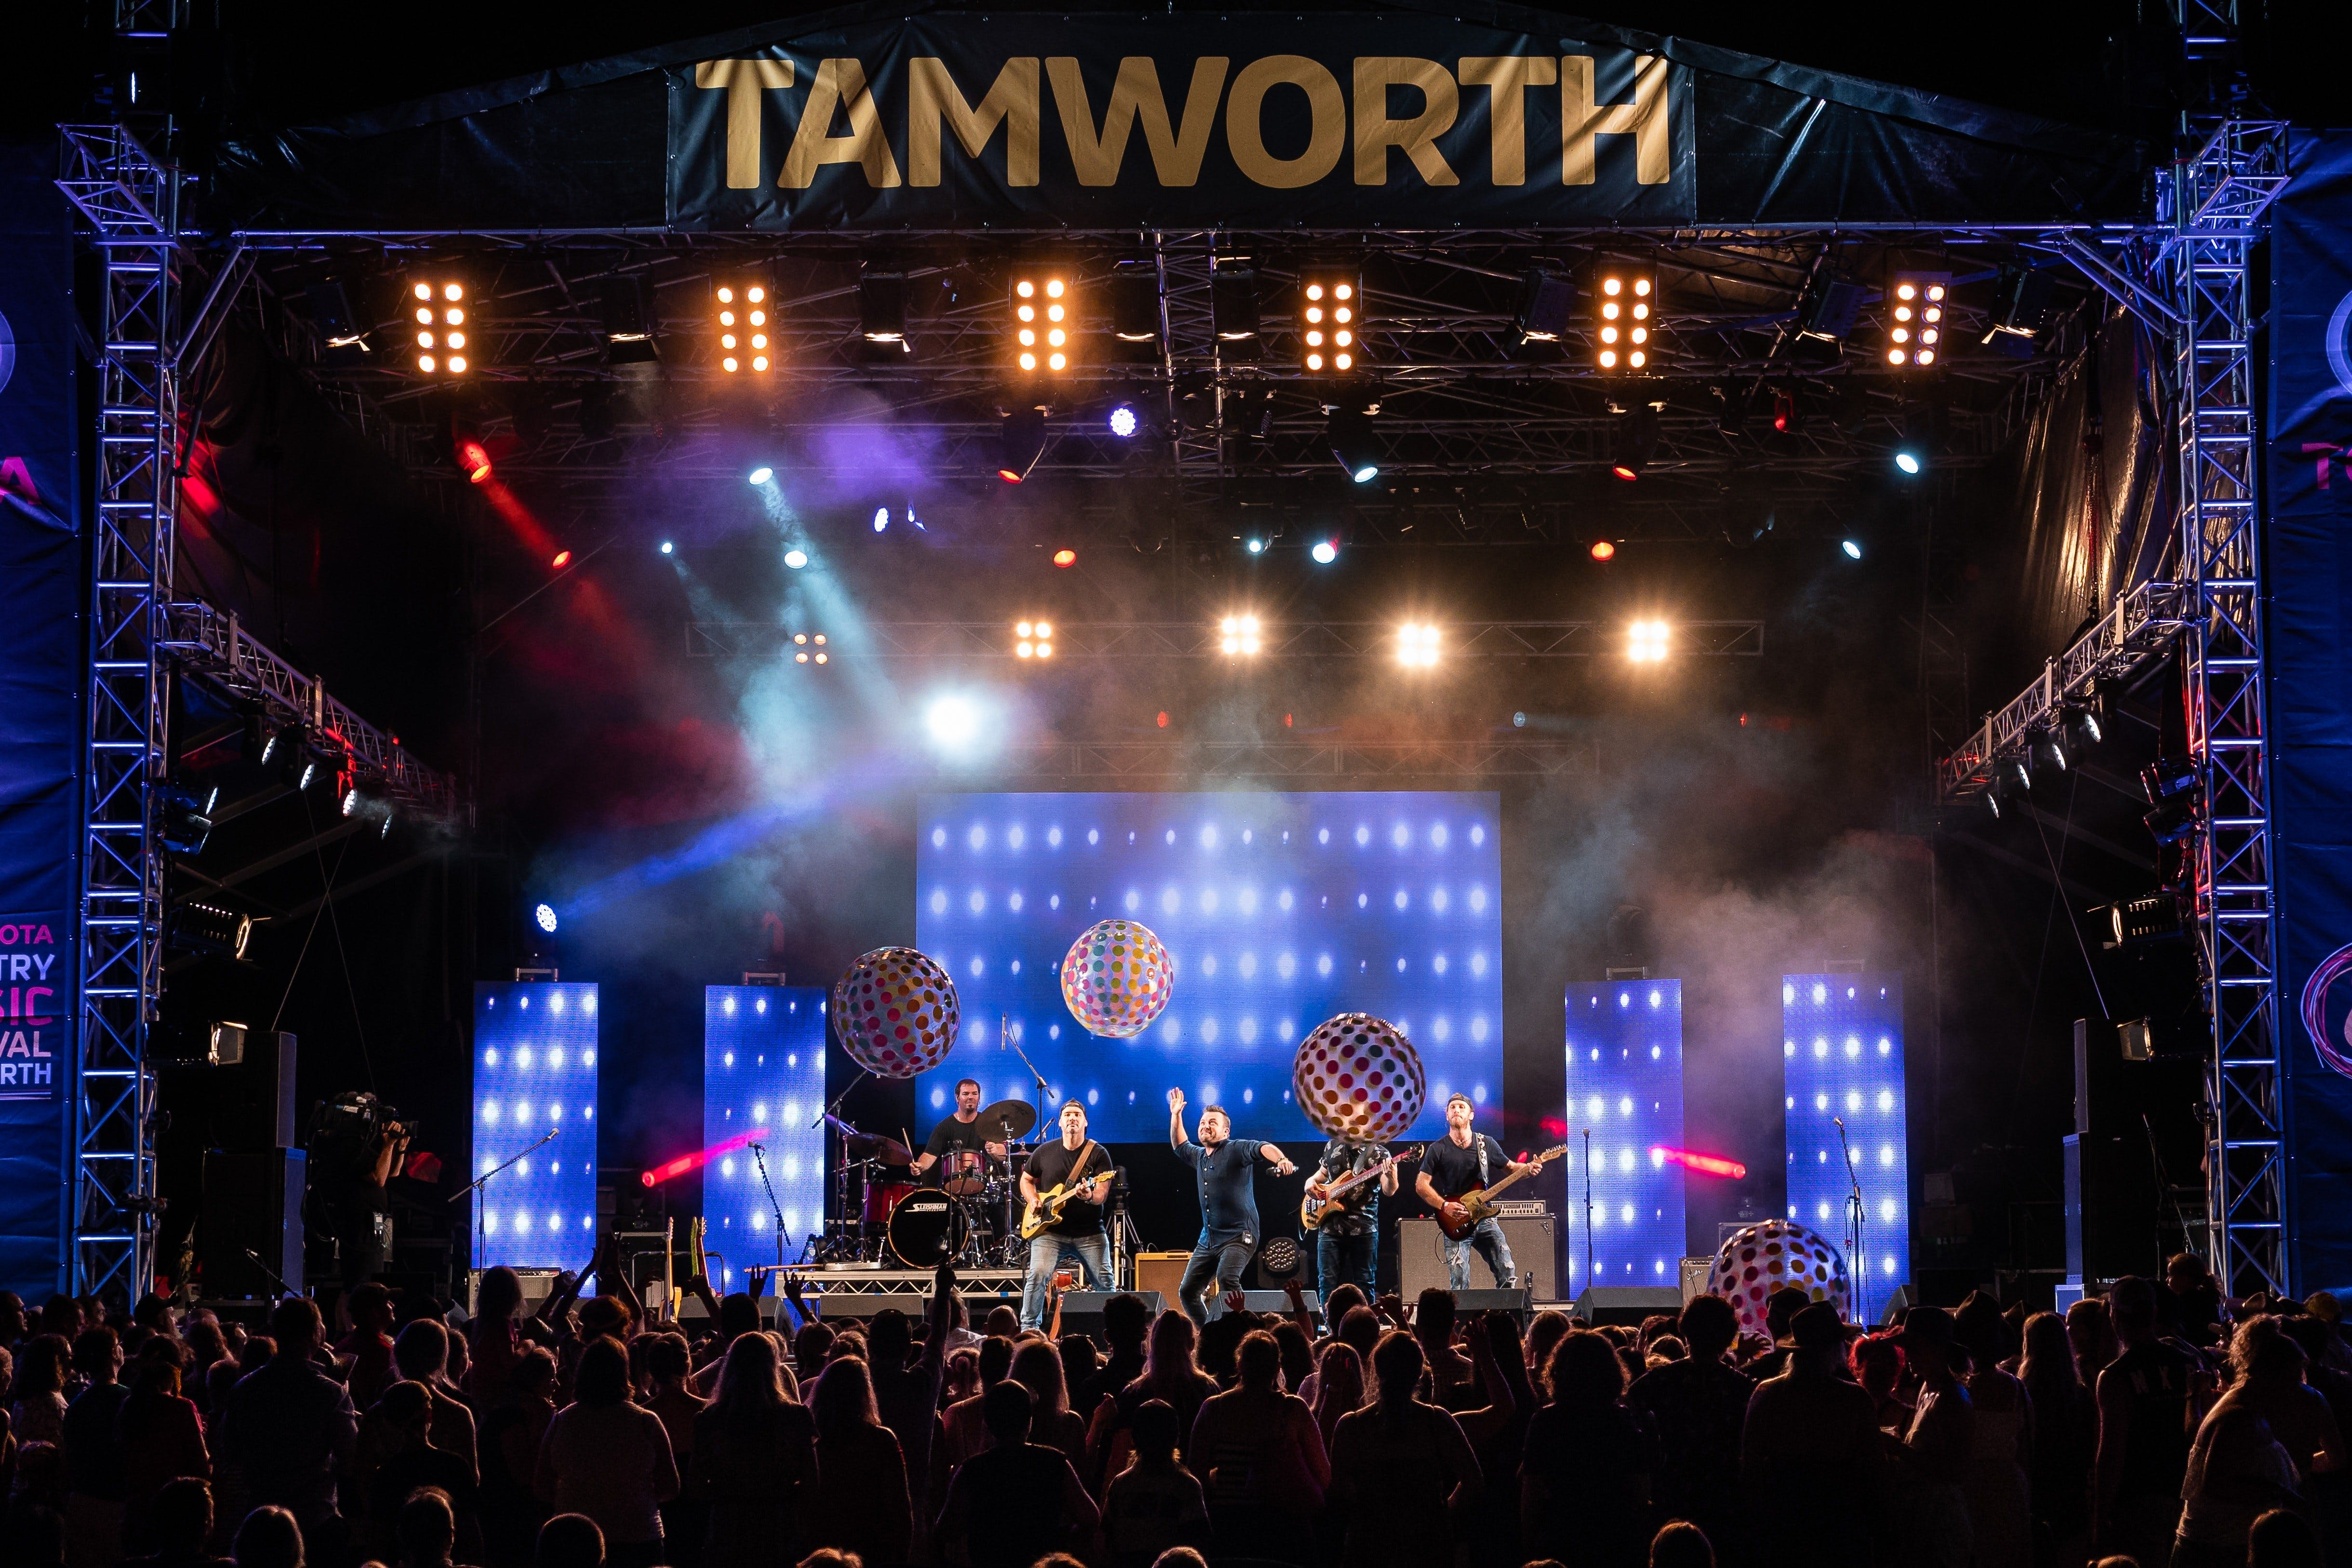 Toyota Country Music Festival Tamworth - Broome Tourism